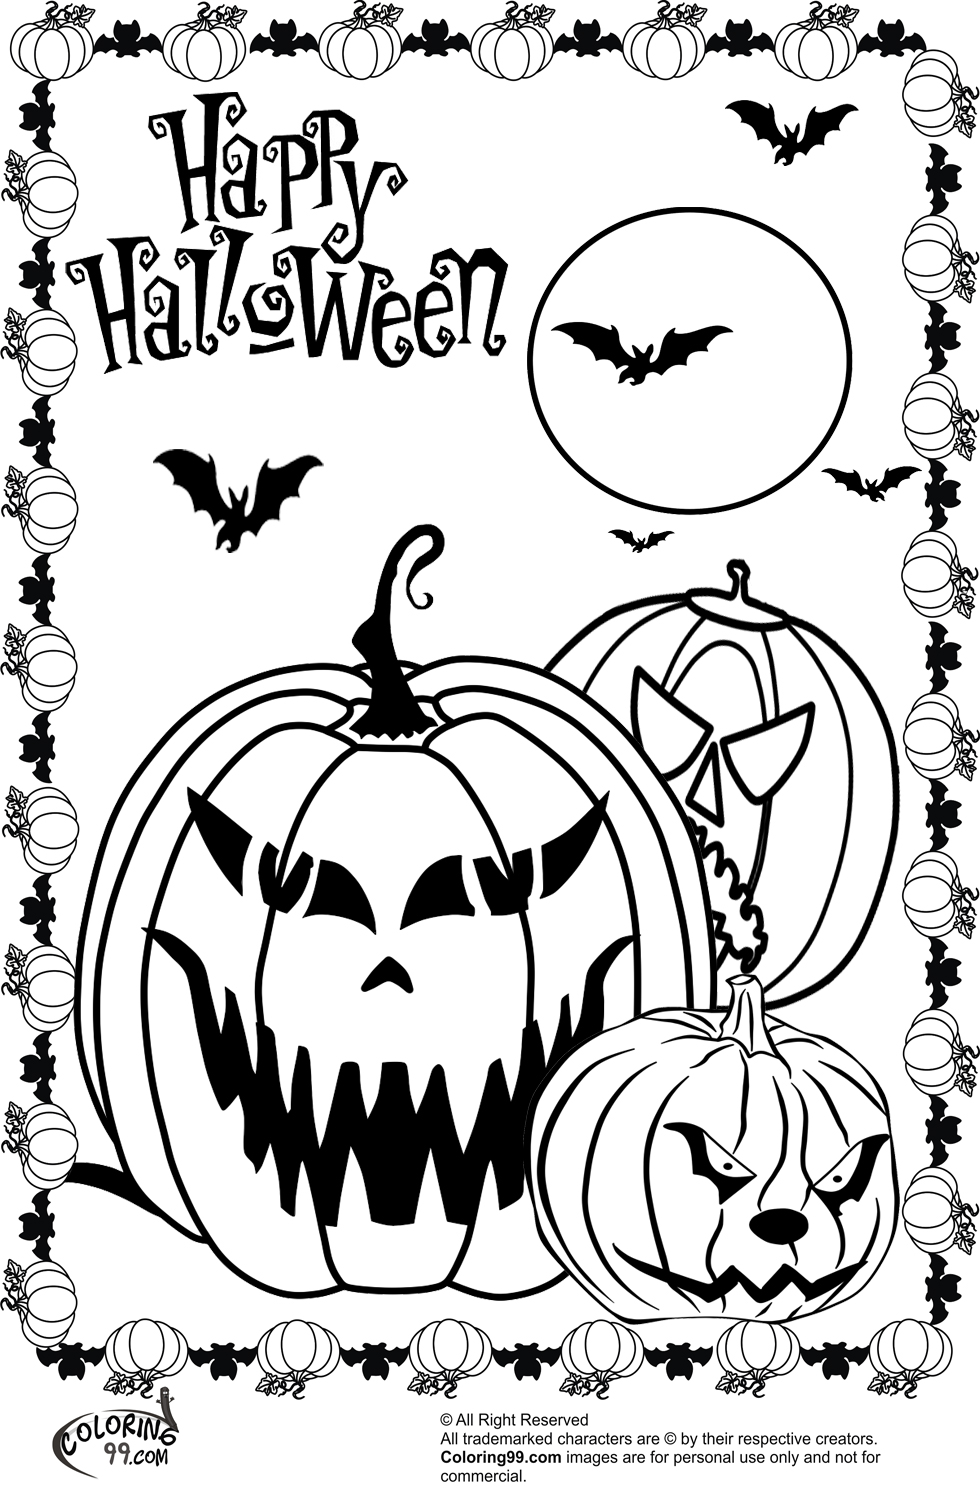 printable coloring pages halloween | Scary Halloween Pumpkin Coloring Pages | Team colors